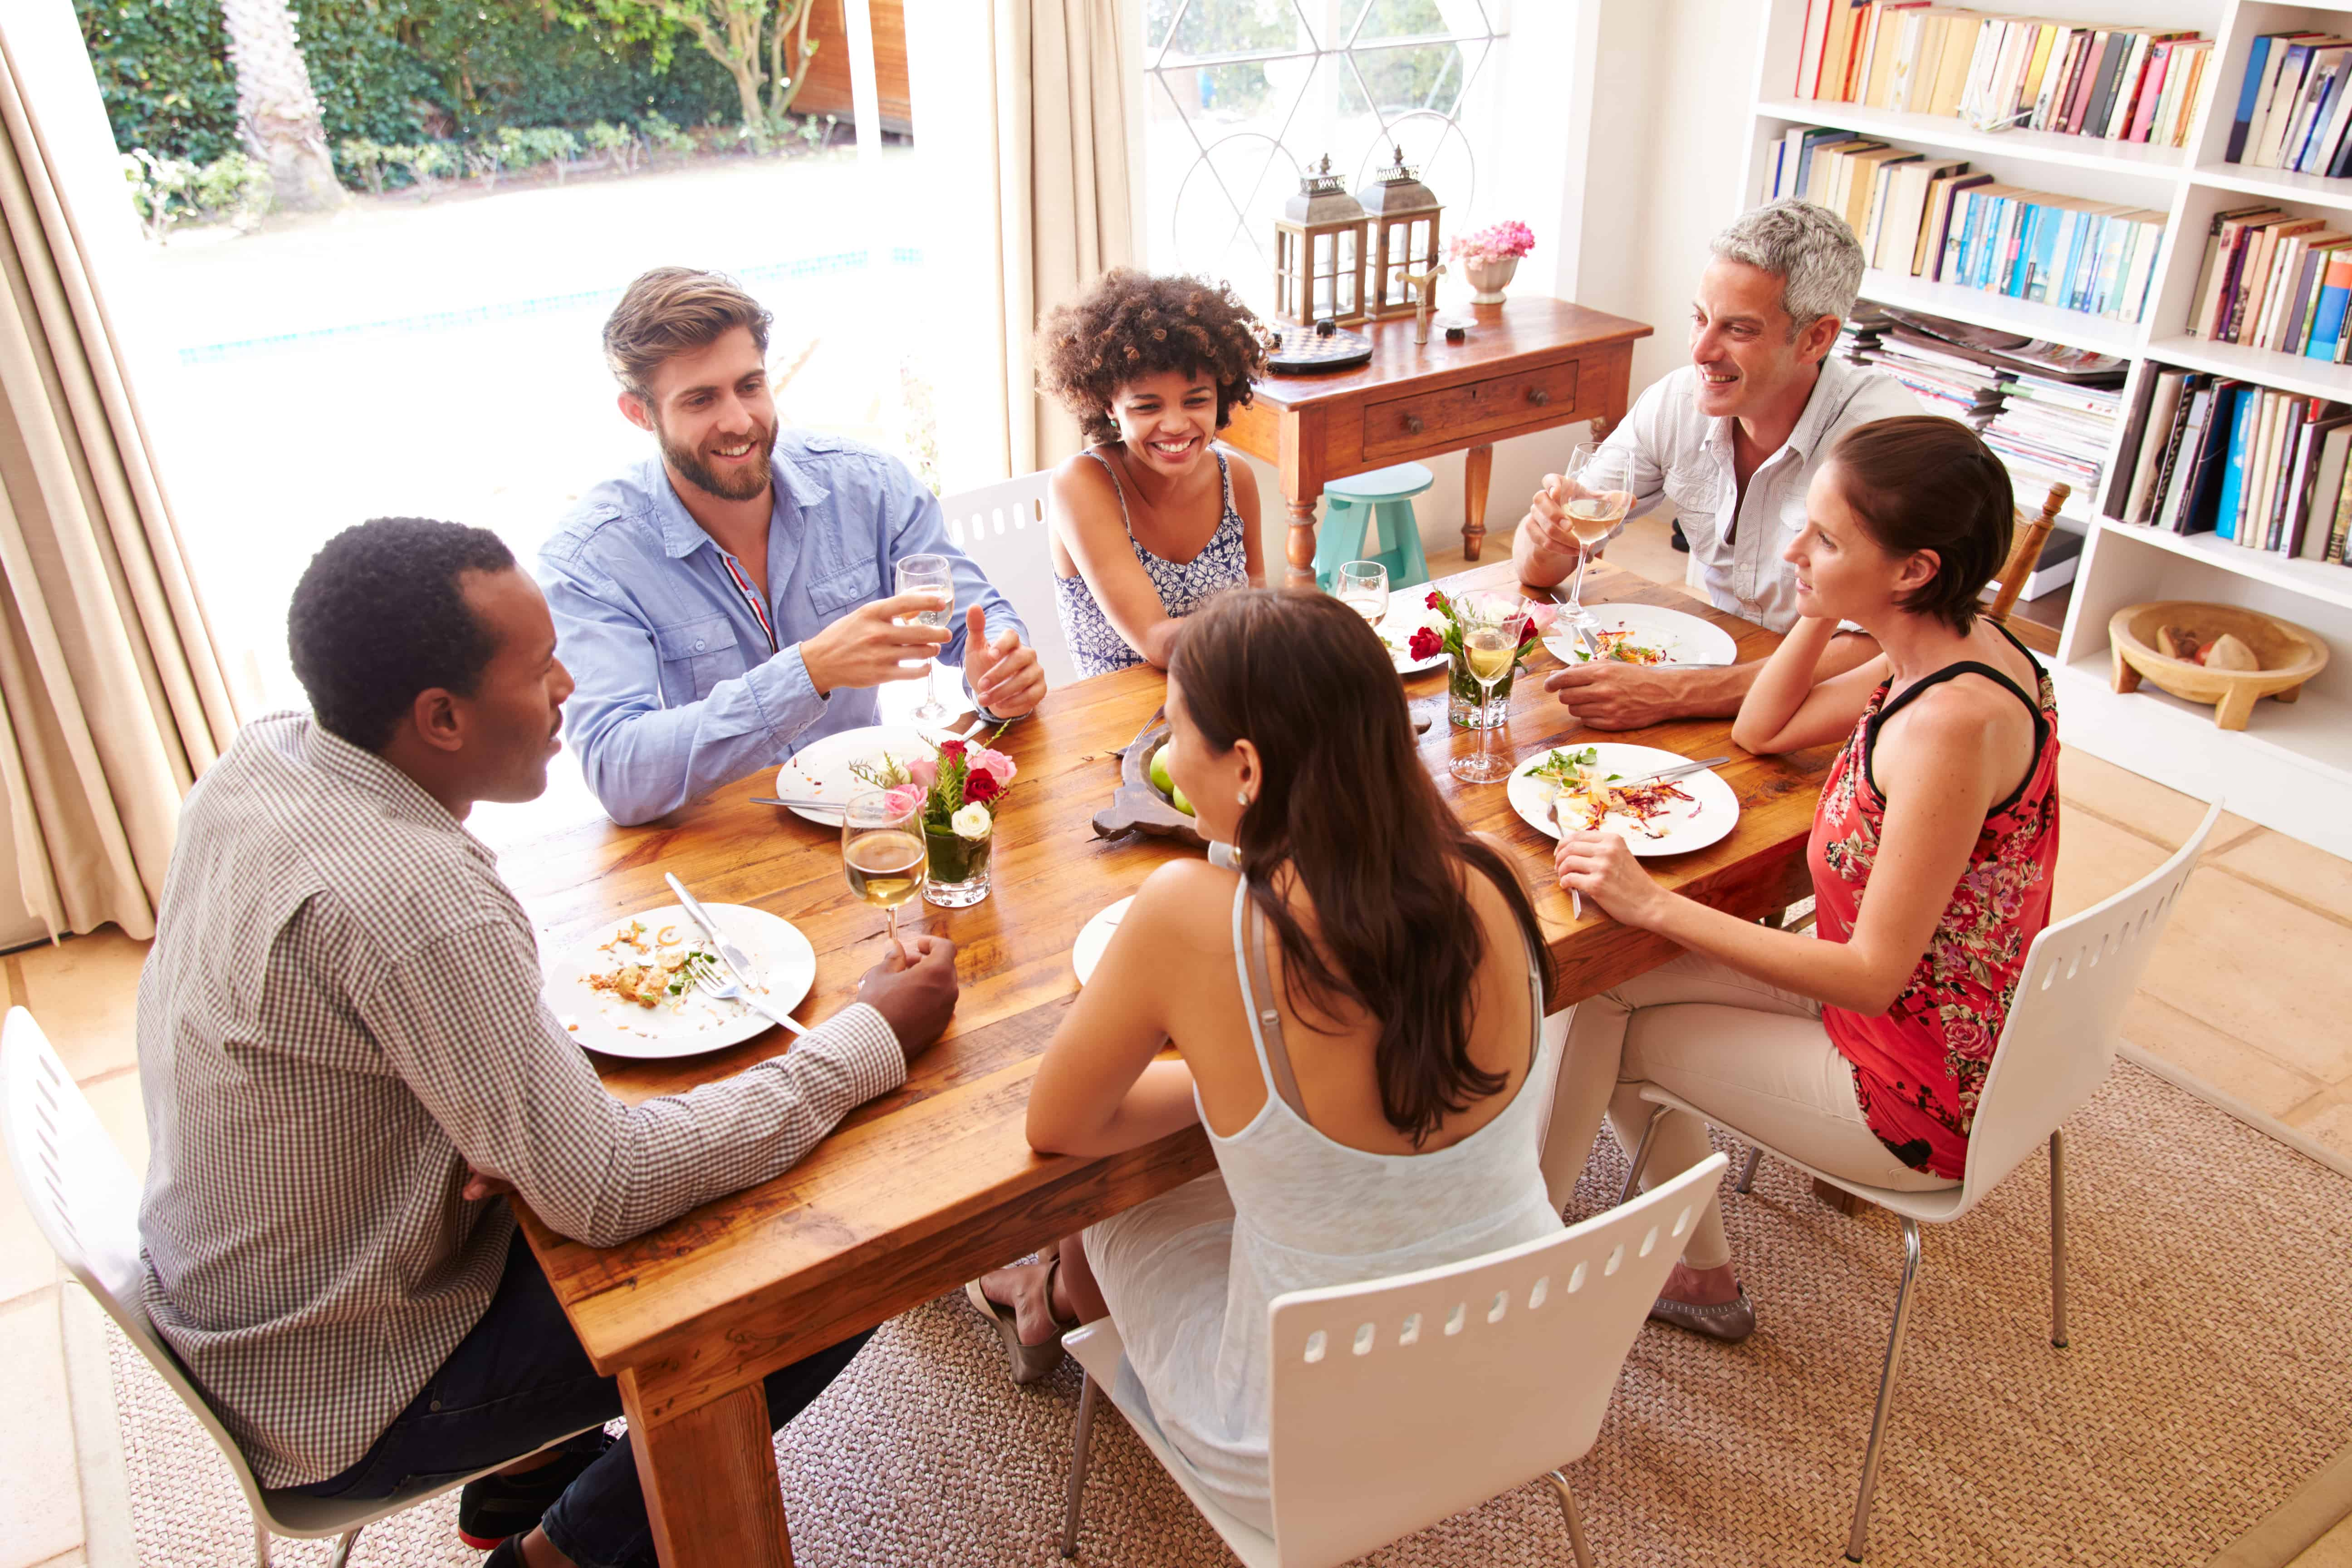 Building Friendships with Dinner Guests